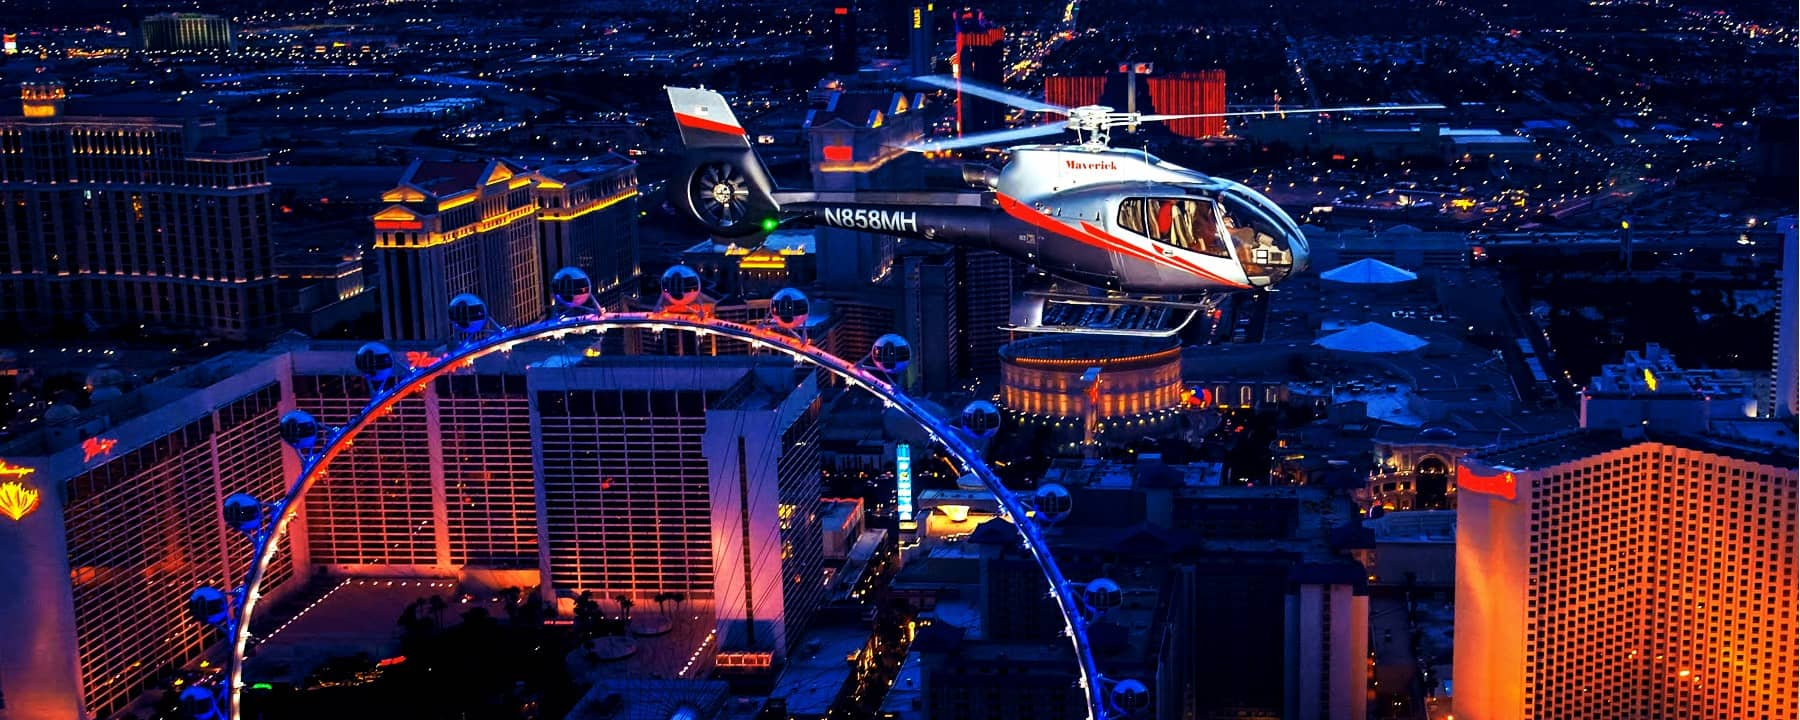 Las Vegas Sightseeing by Land and Air